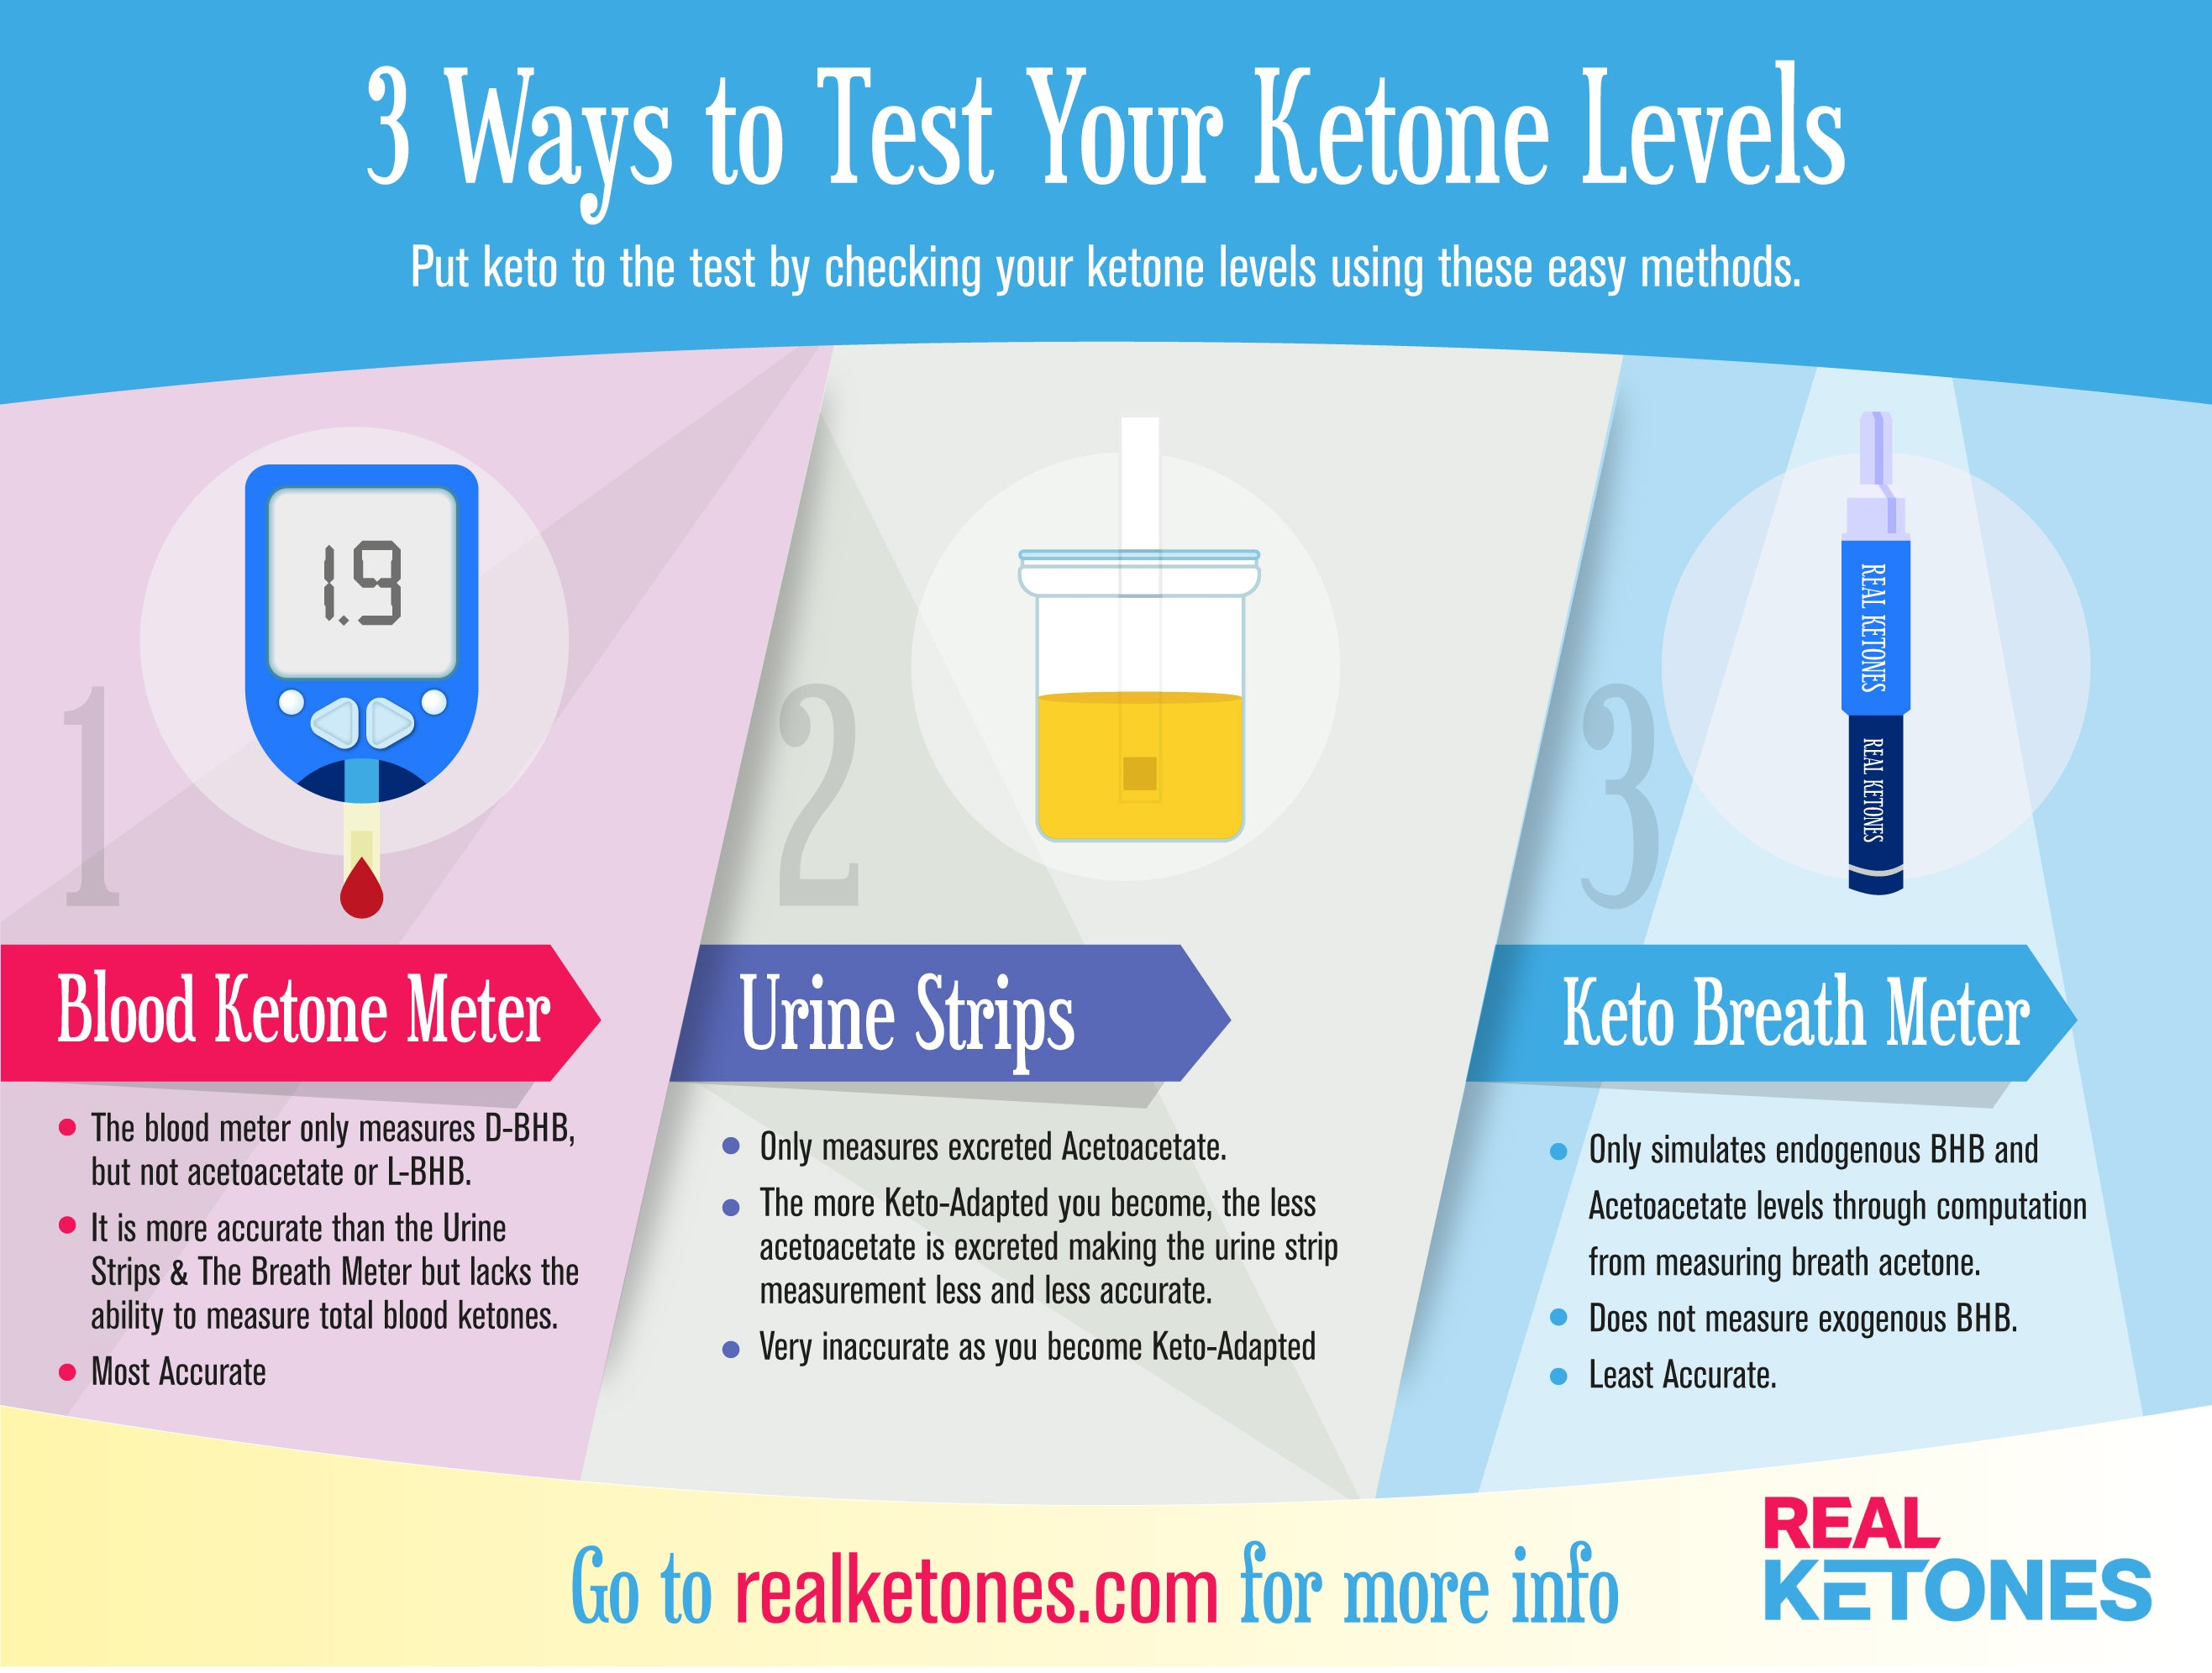 Testing your ketone levels at home!